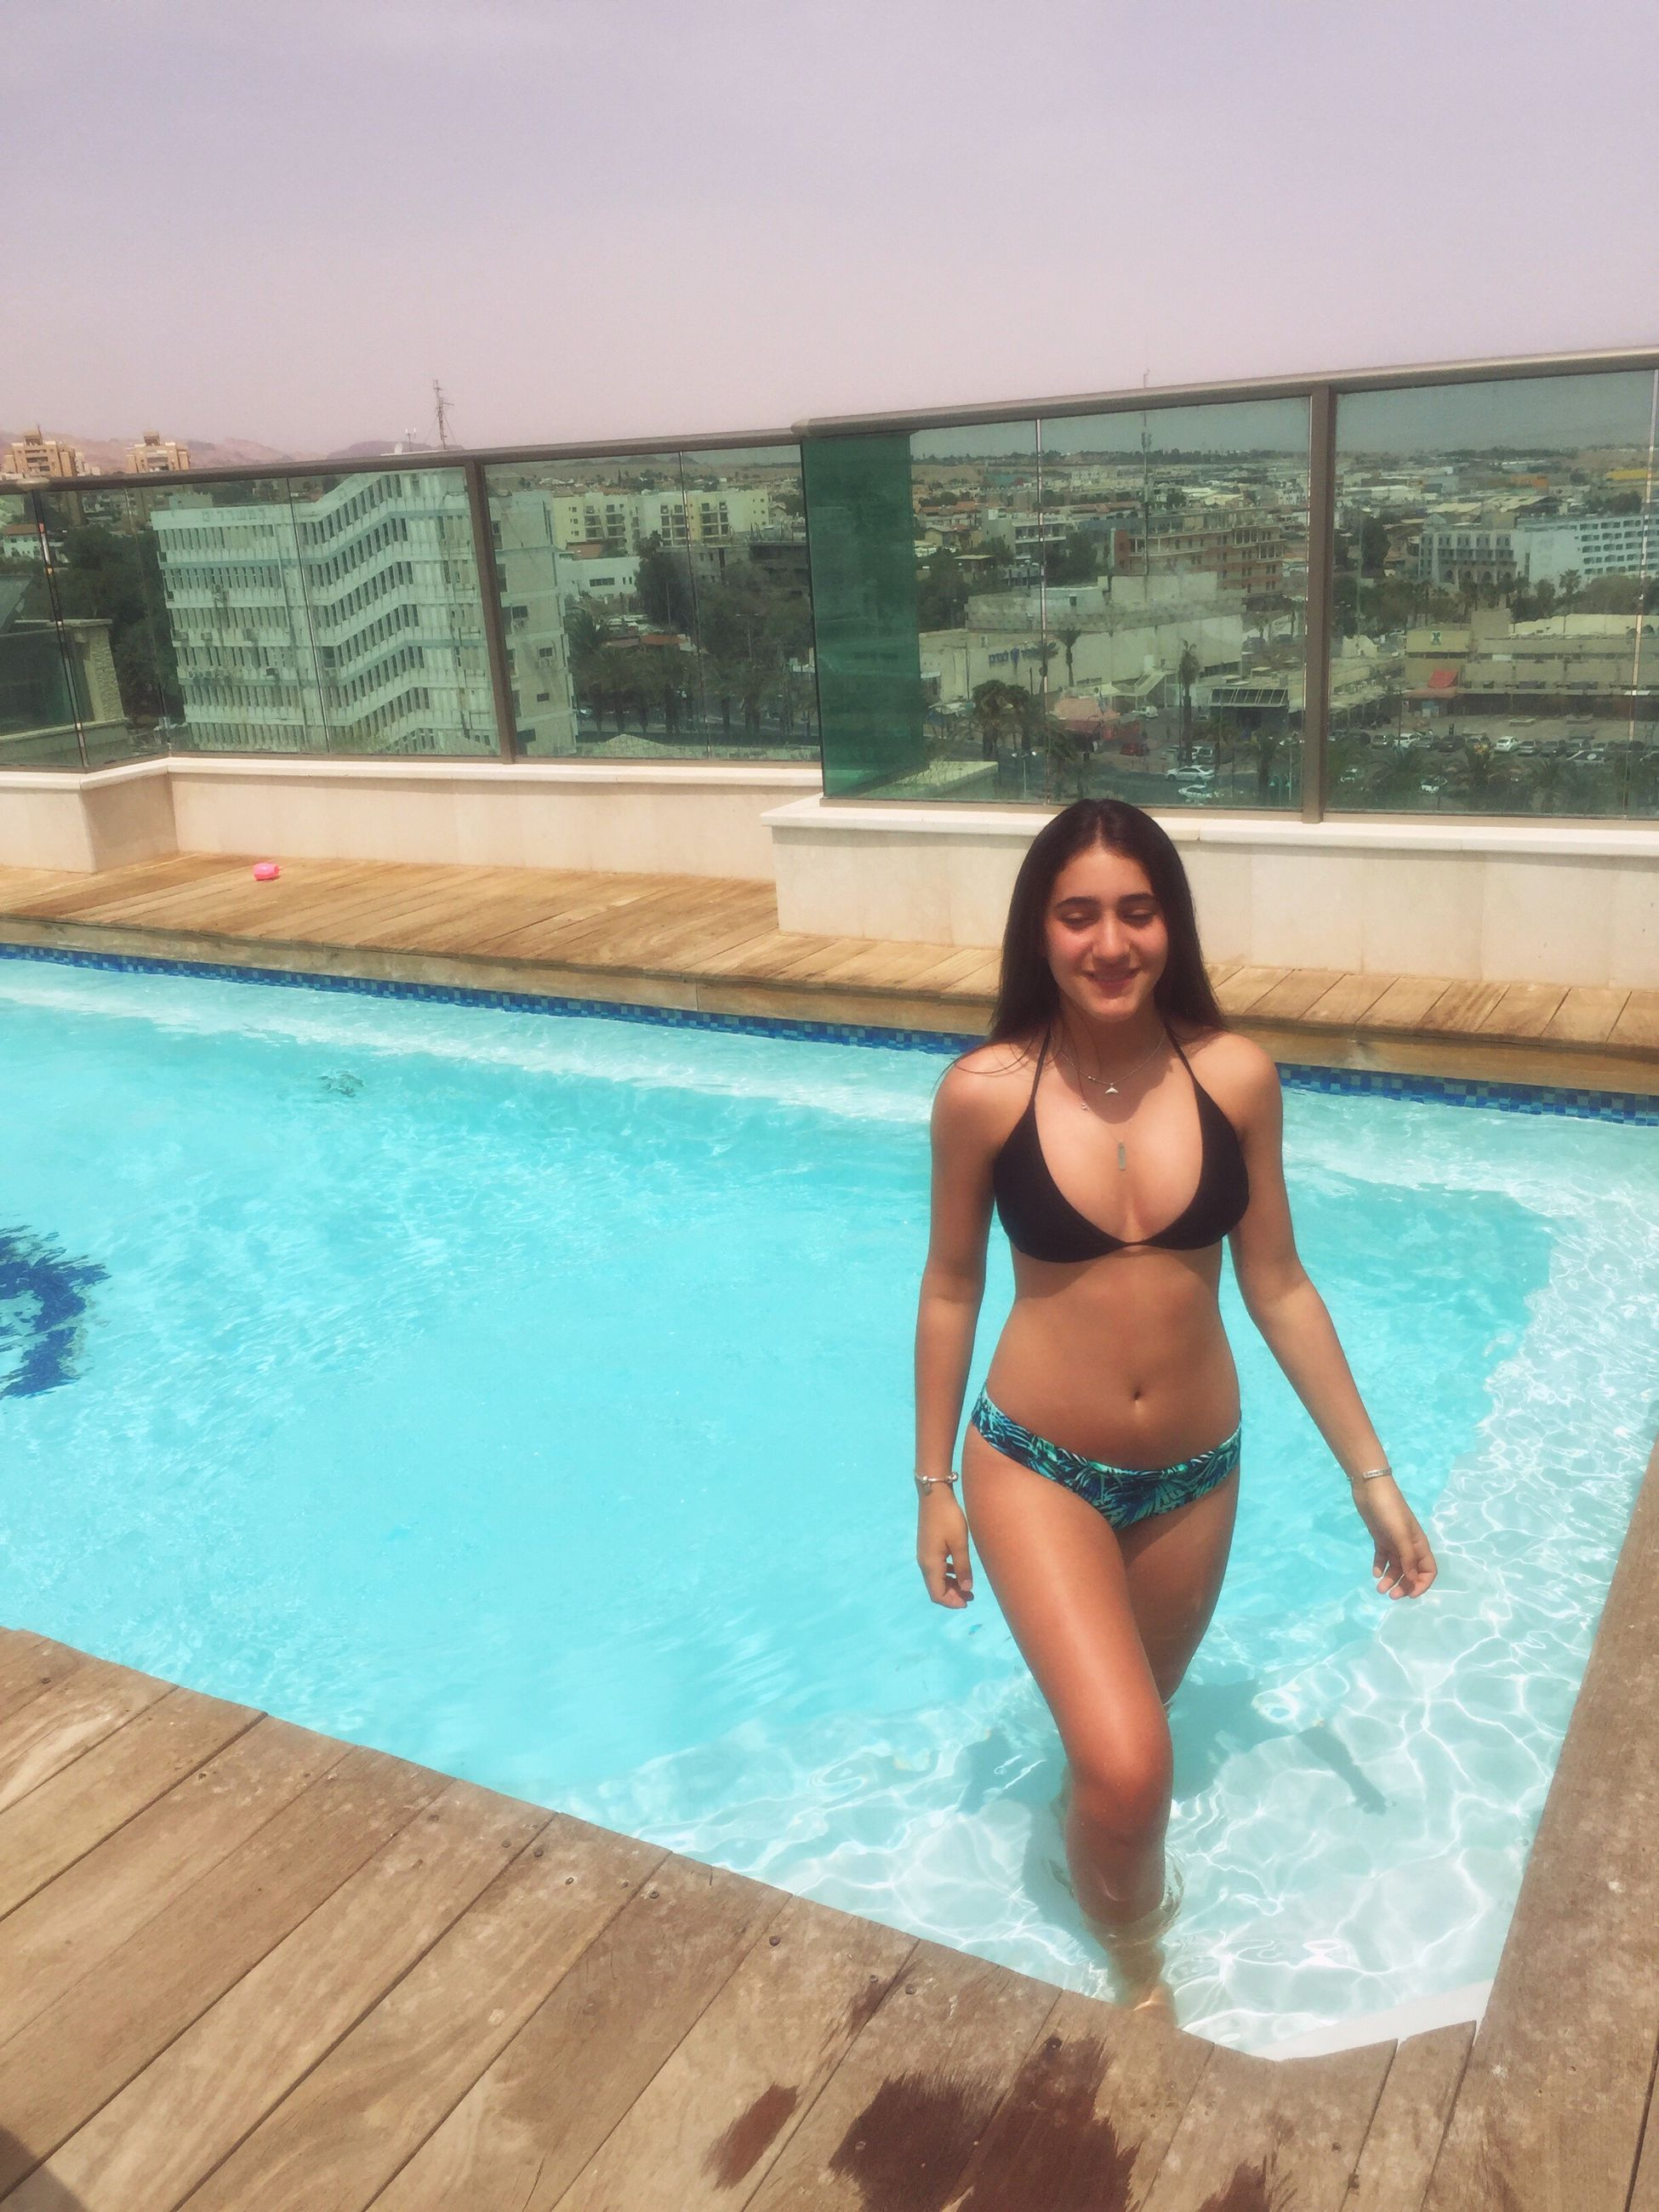 water, swimming pool, lifestyles, real people, standing, one person, vacations, young women, bikini, leisure activity, smiling, young adult, outdoors, beautiful woman, beauty, adult, only women, people, day, adults only